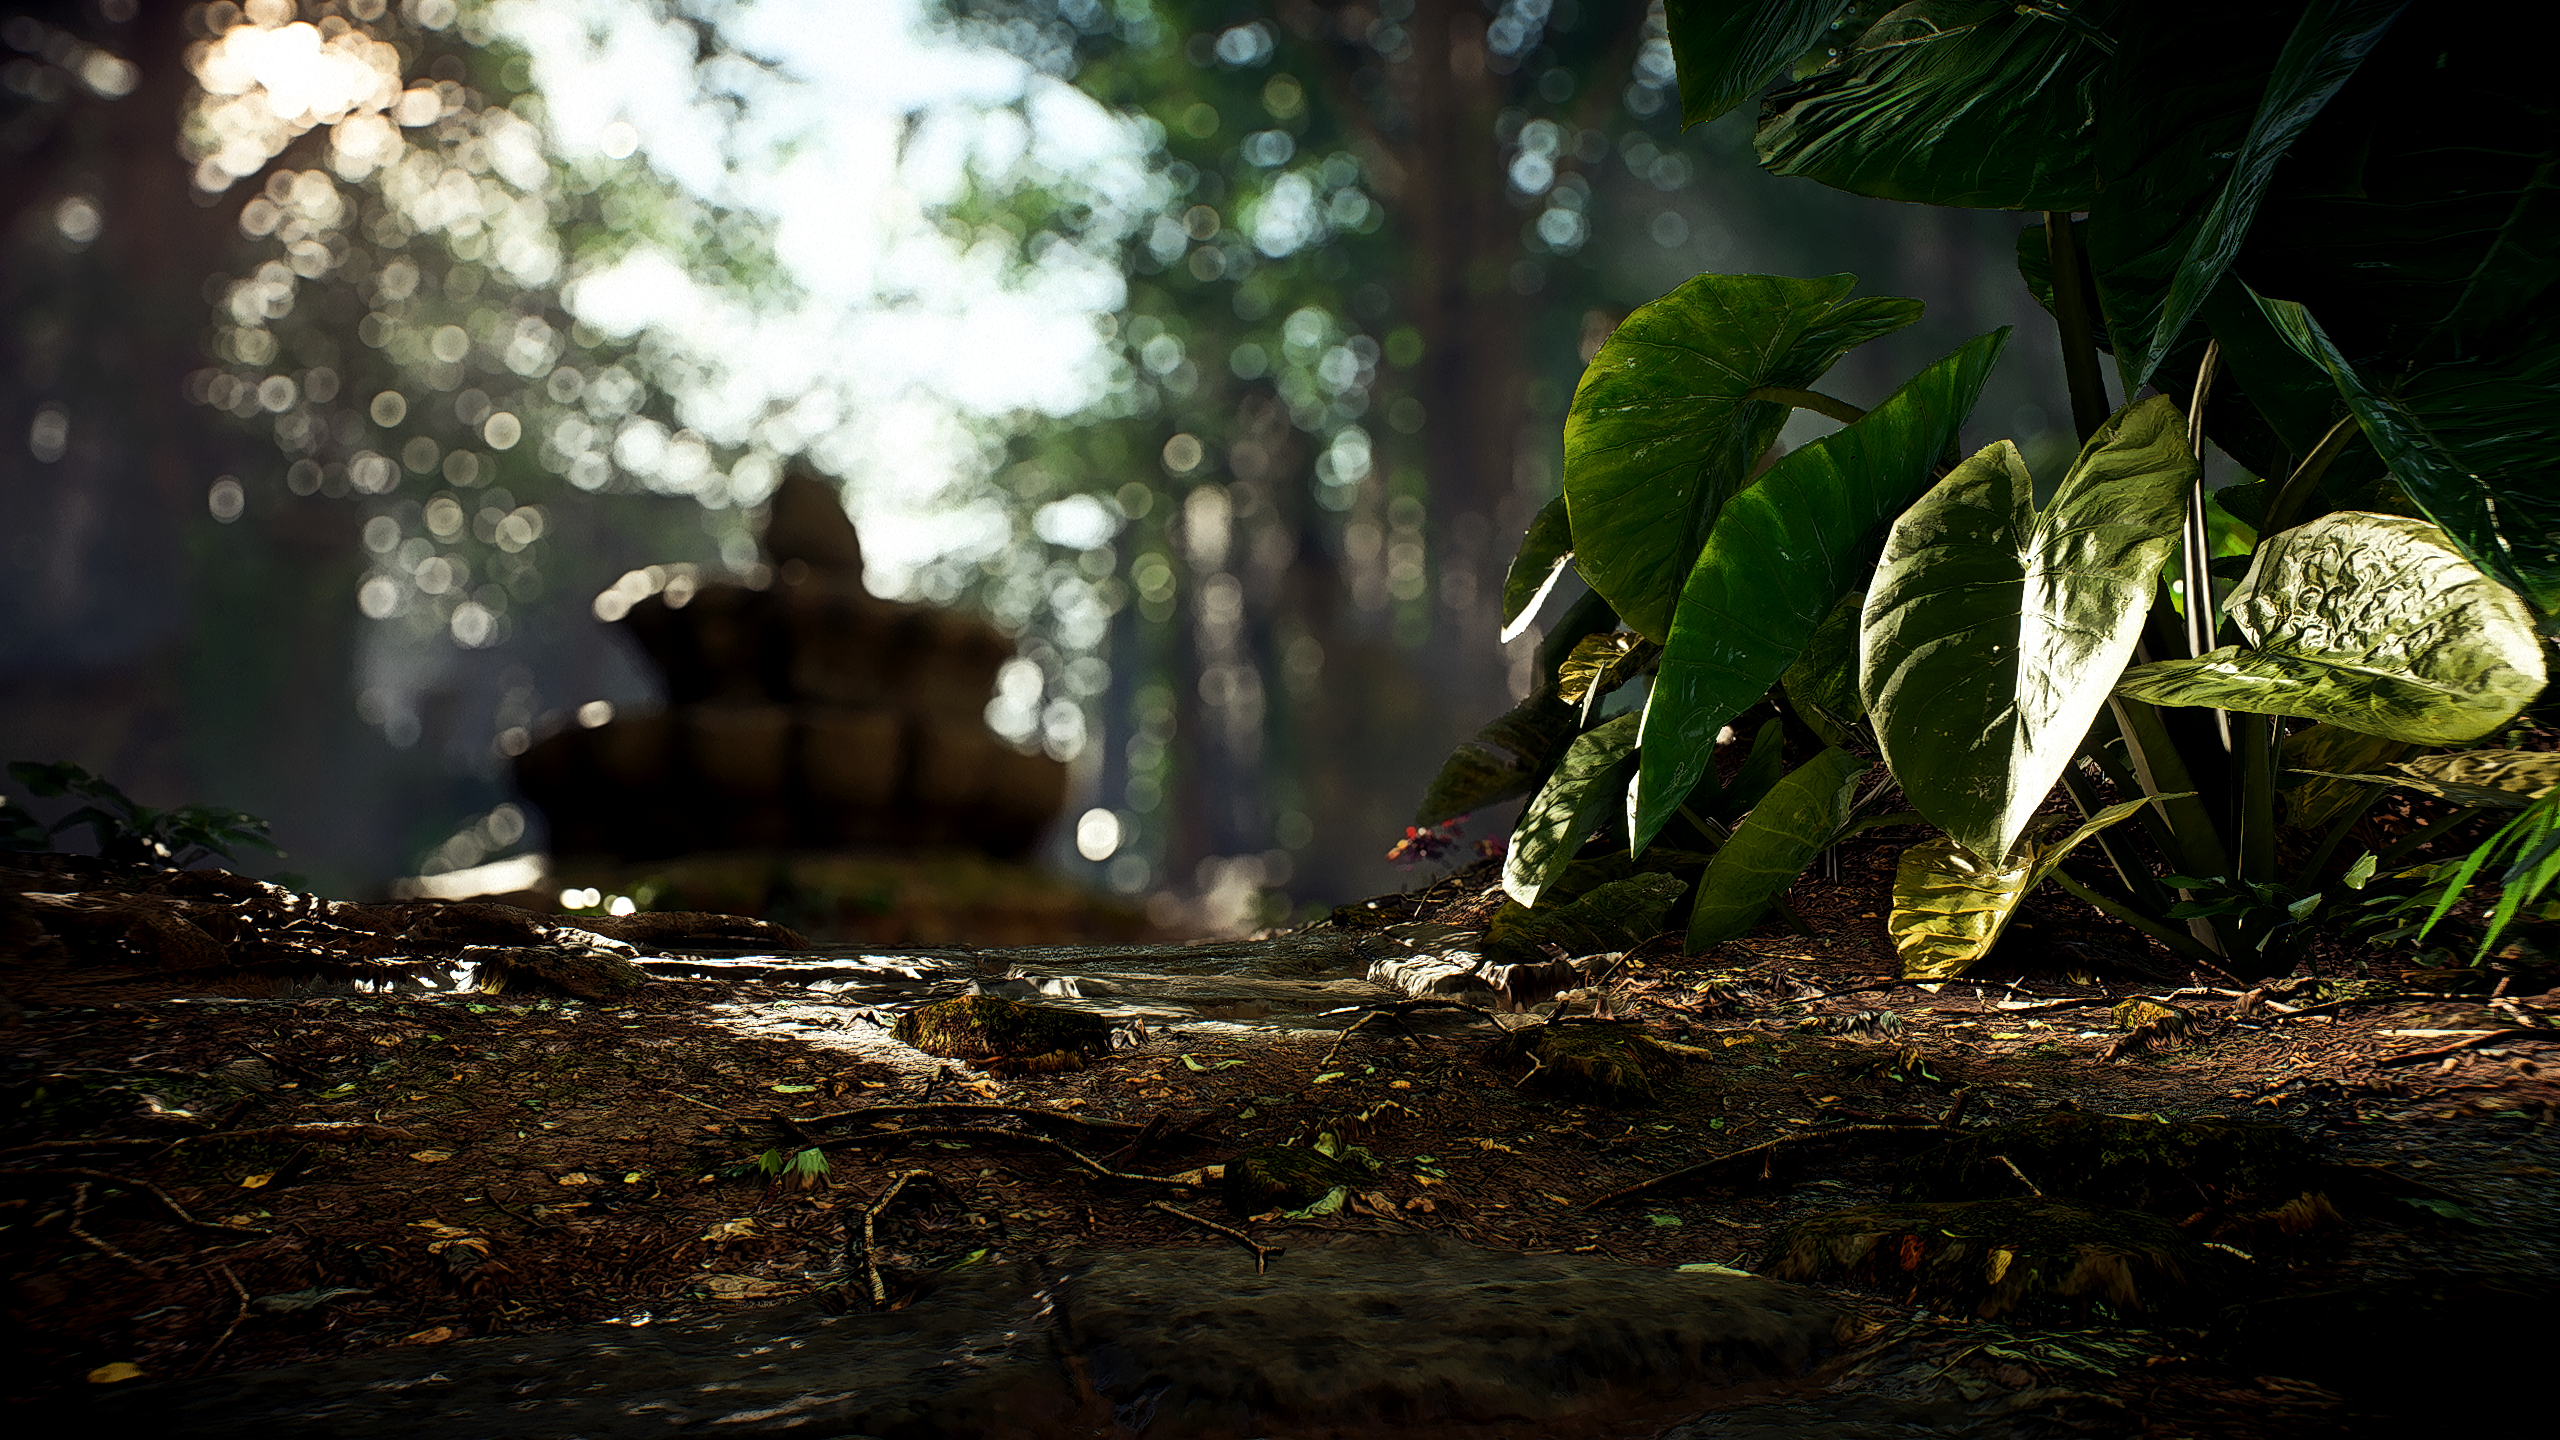 Star Wars Forest Ii Hd Wallpaper Background Image 2560x1440 Id 1059543 Wallpaper Abyss